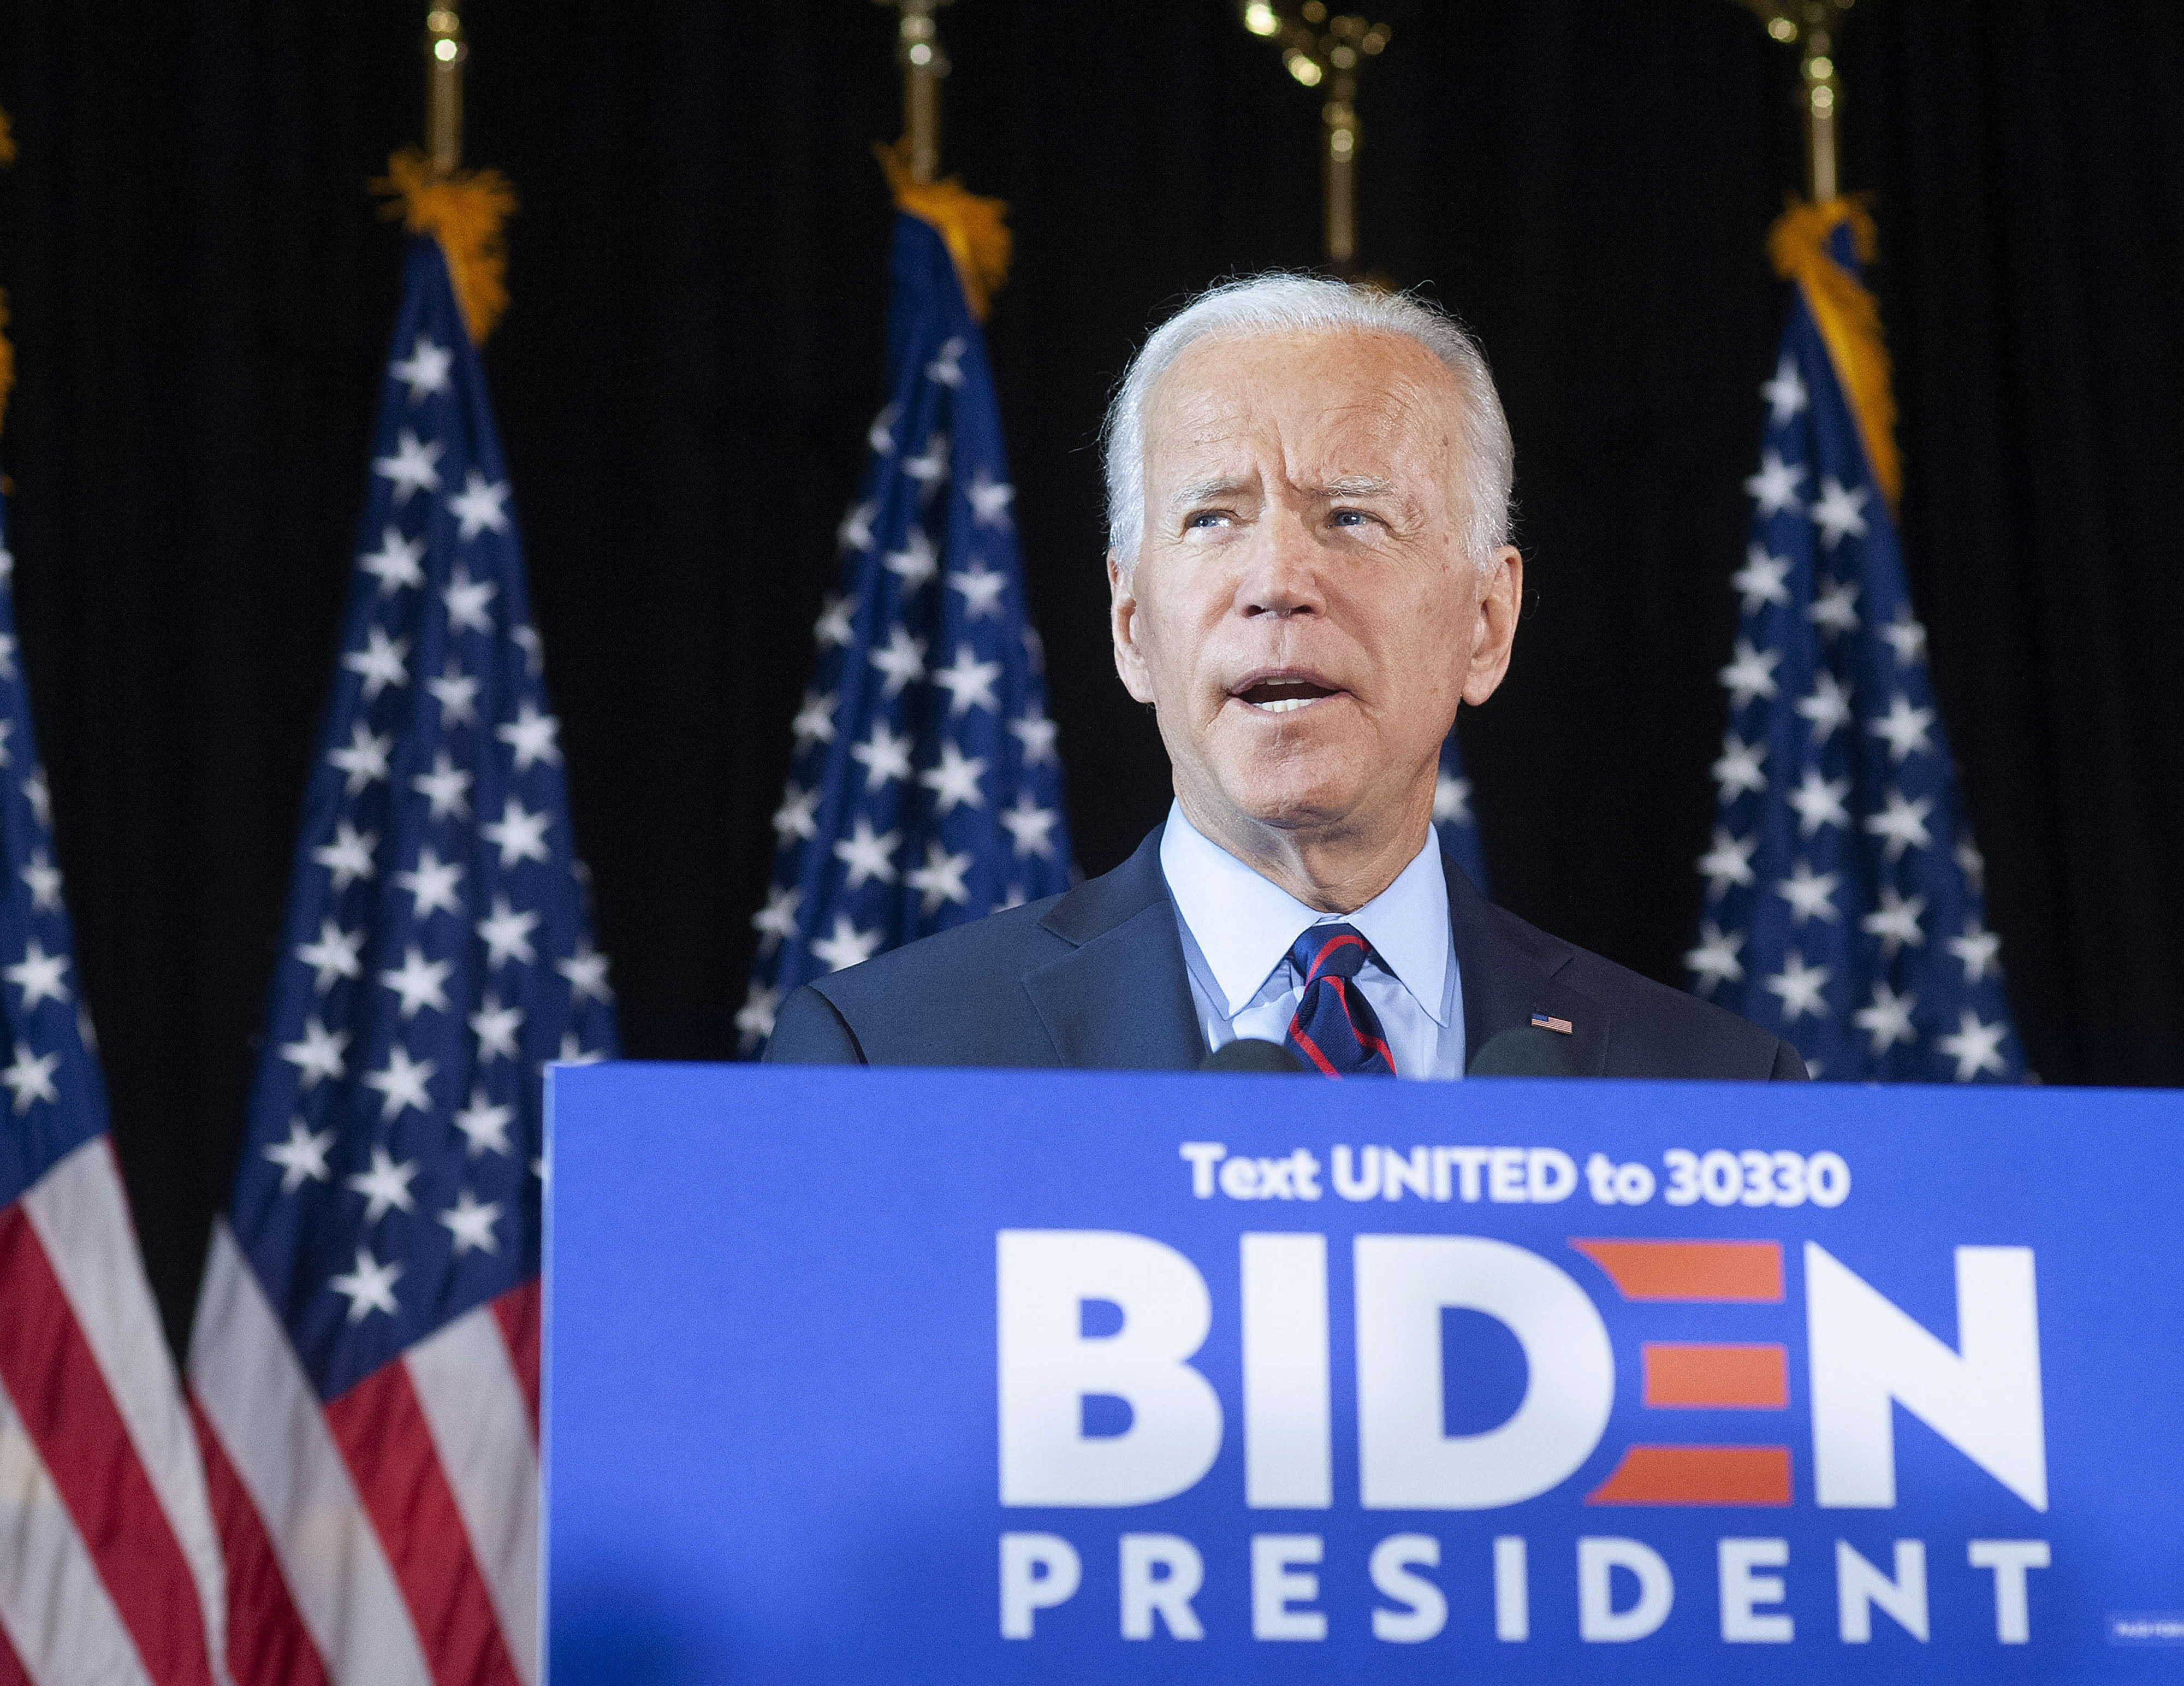 Democrats trust Biden most on foreign policy as Iran tensions simmer, poll says